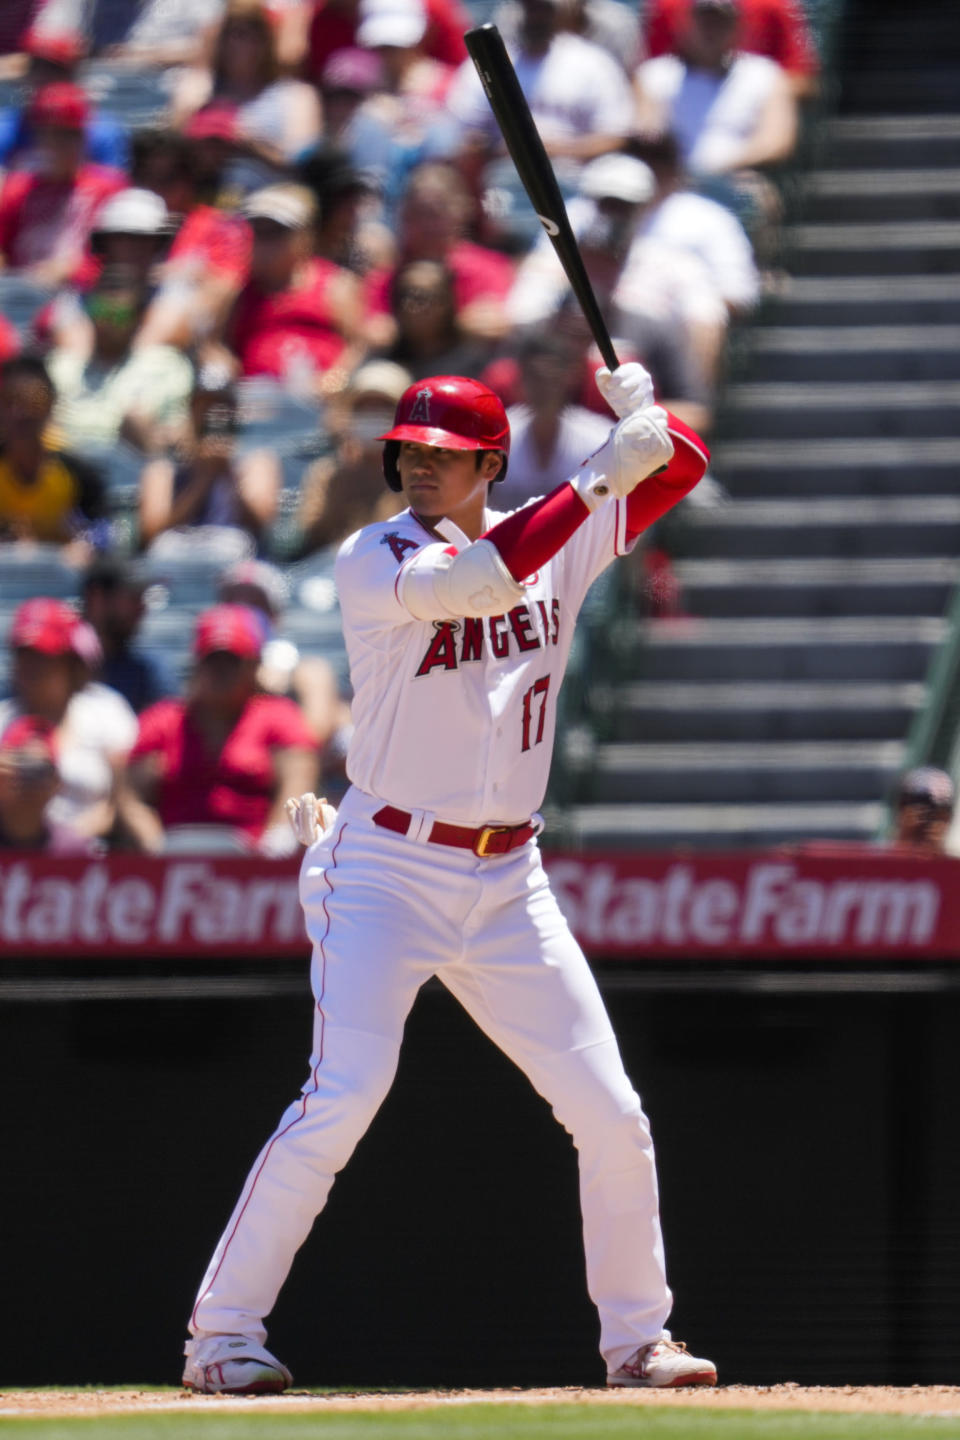 Los Angeles Angels designated hitter Shohei Ohtani (17) steps up to bat during the first inning of a baseball game against the Baltimore Orioles Sunday, July 4, 2021, in Anaheim, Calif. (AP Photo/Ashley Landis)